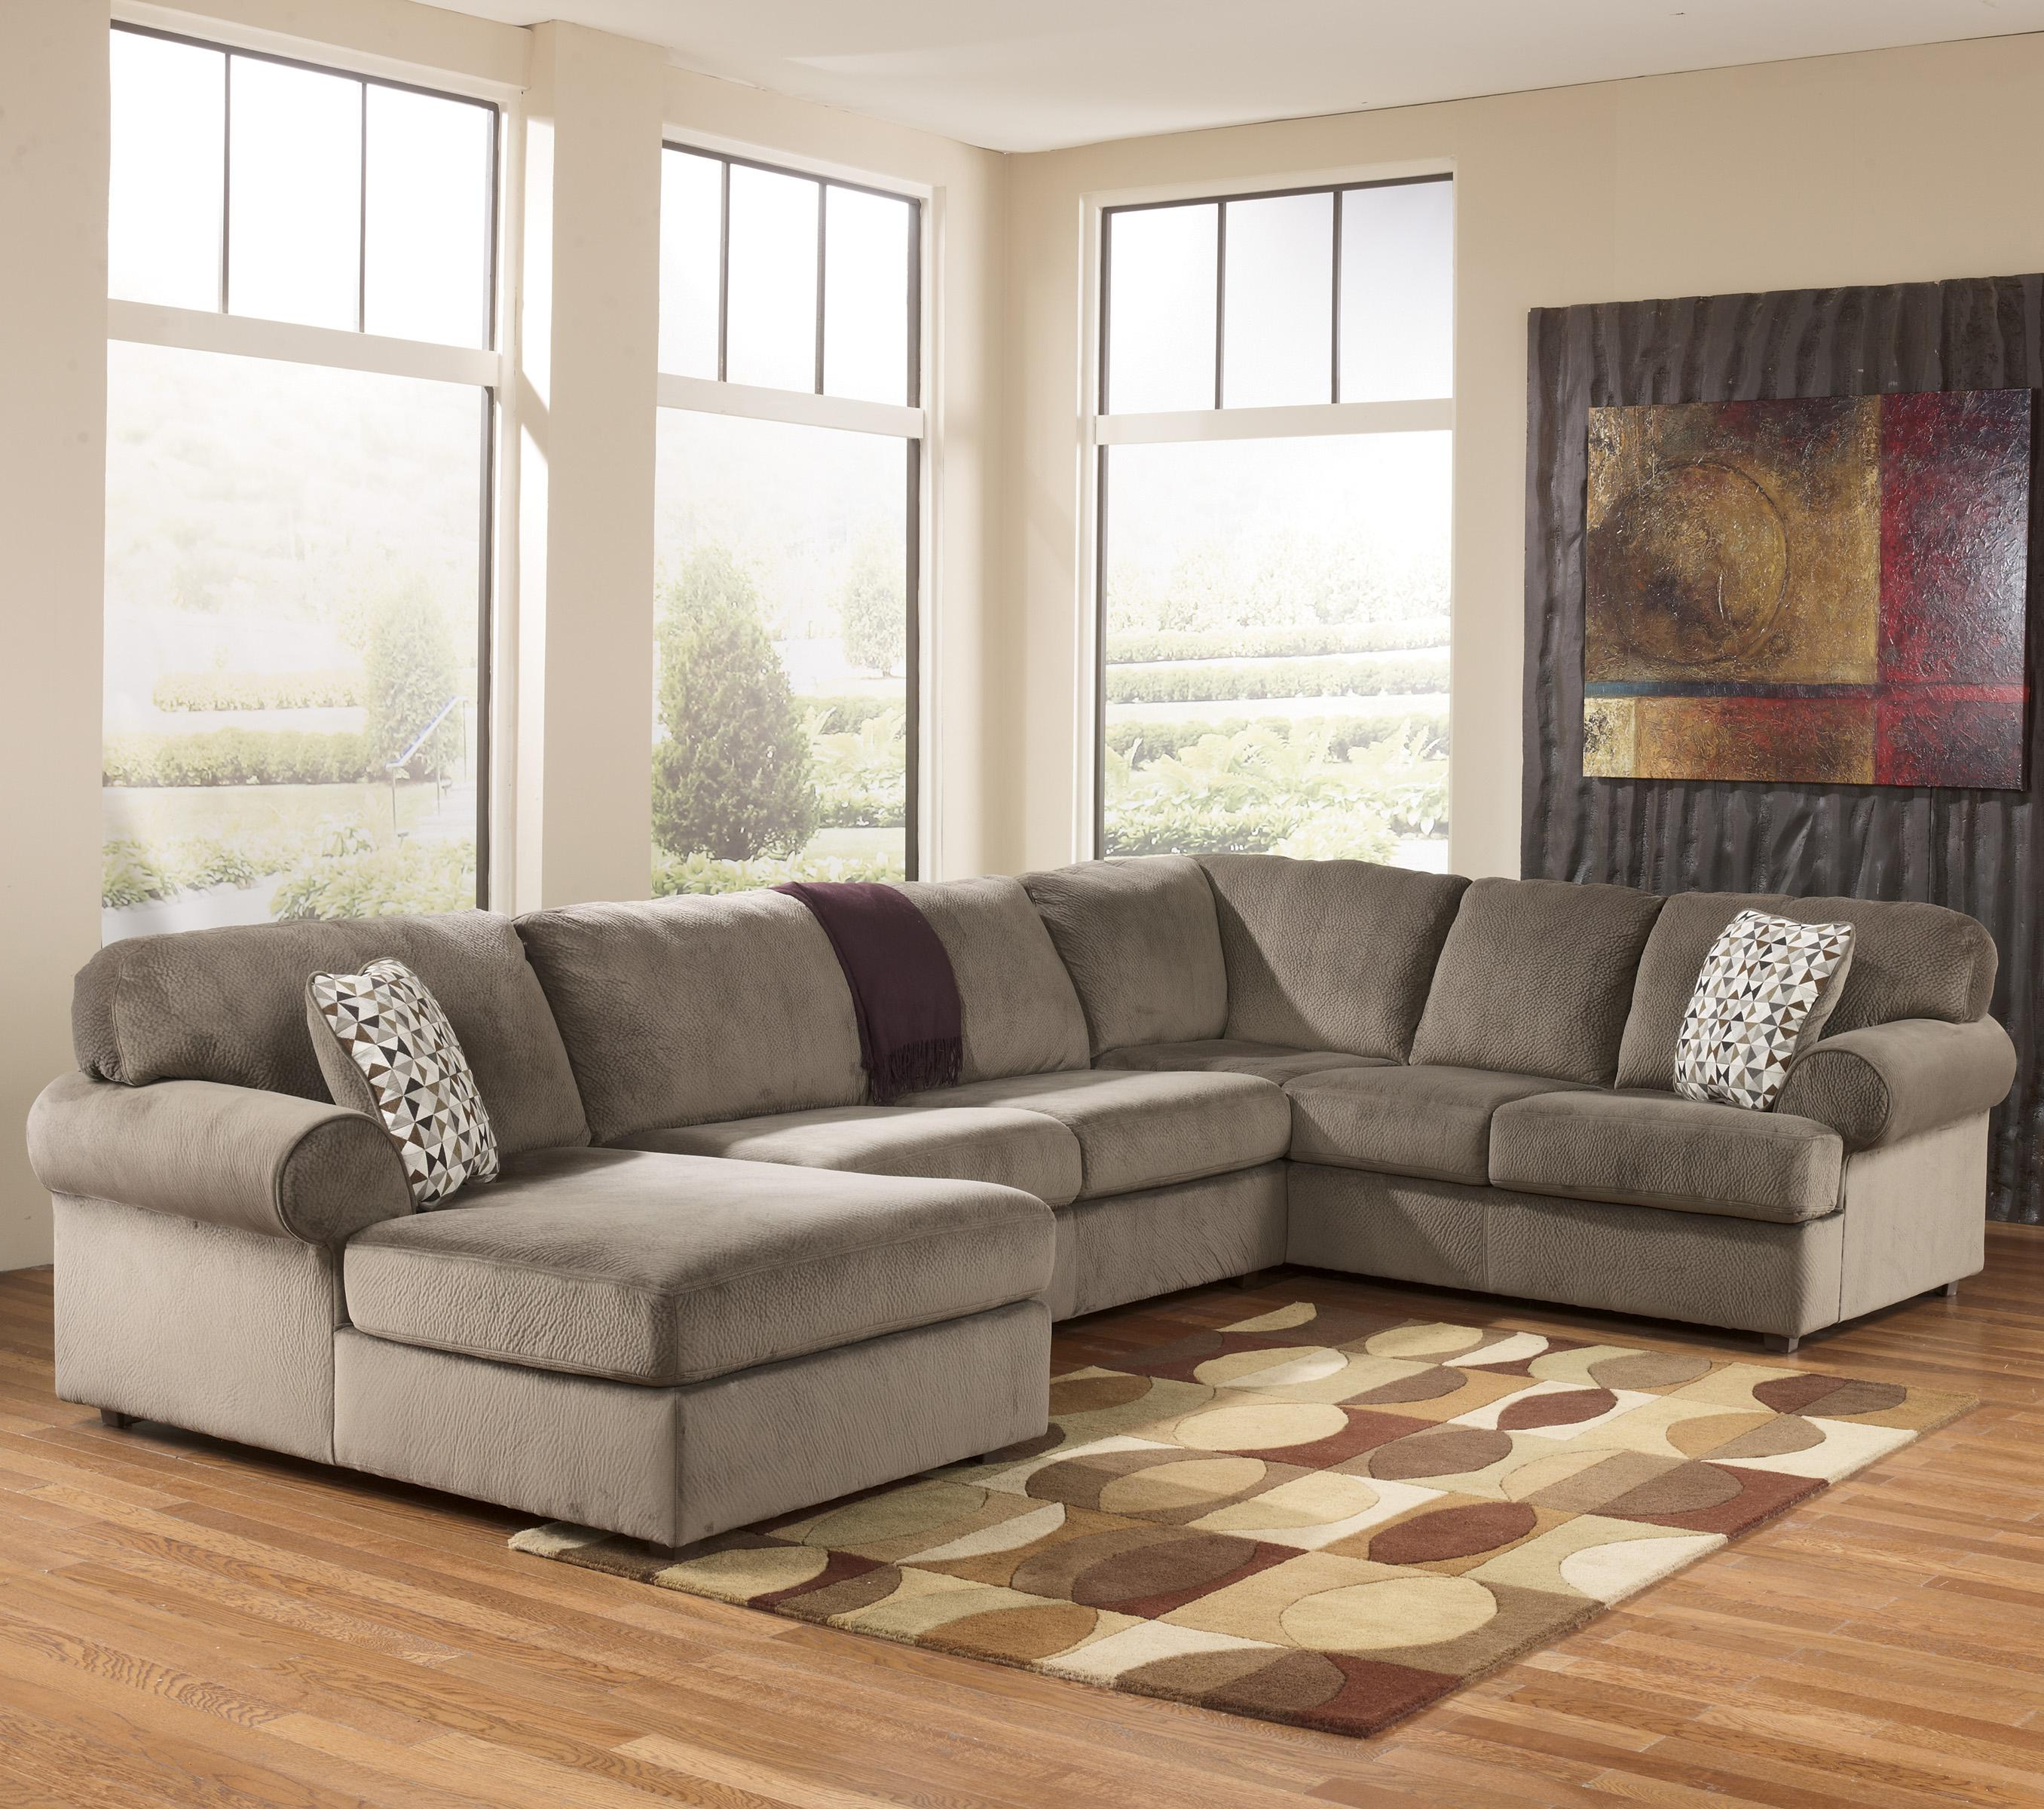 Baci Living Room Within Malbry Point 3 Piece Sectionals With Laf Chaise (Gallery 15 of 20)